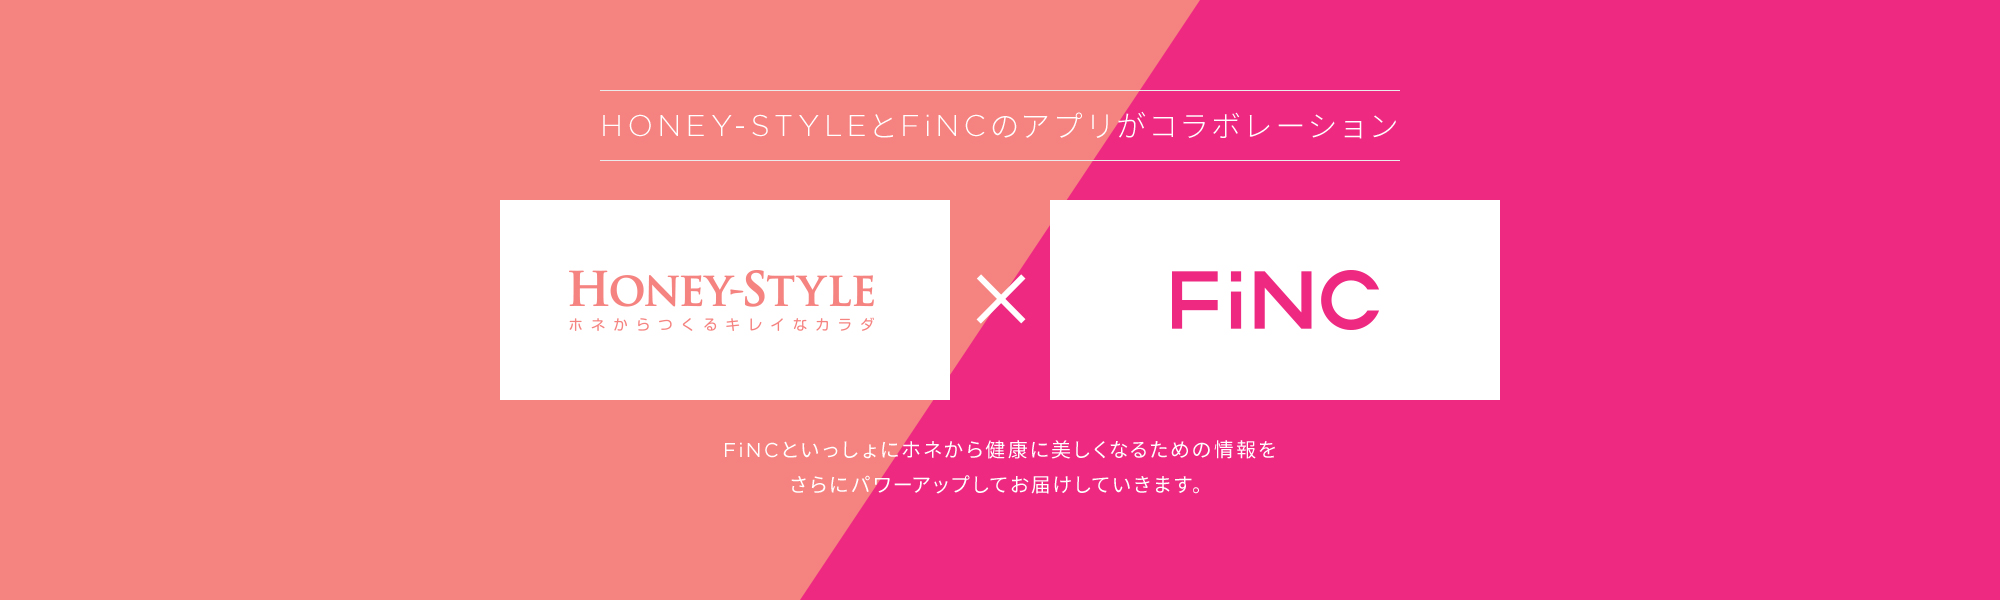 HONEY-STYLE×FiNC_PC